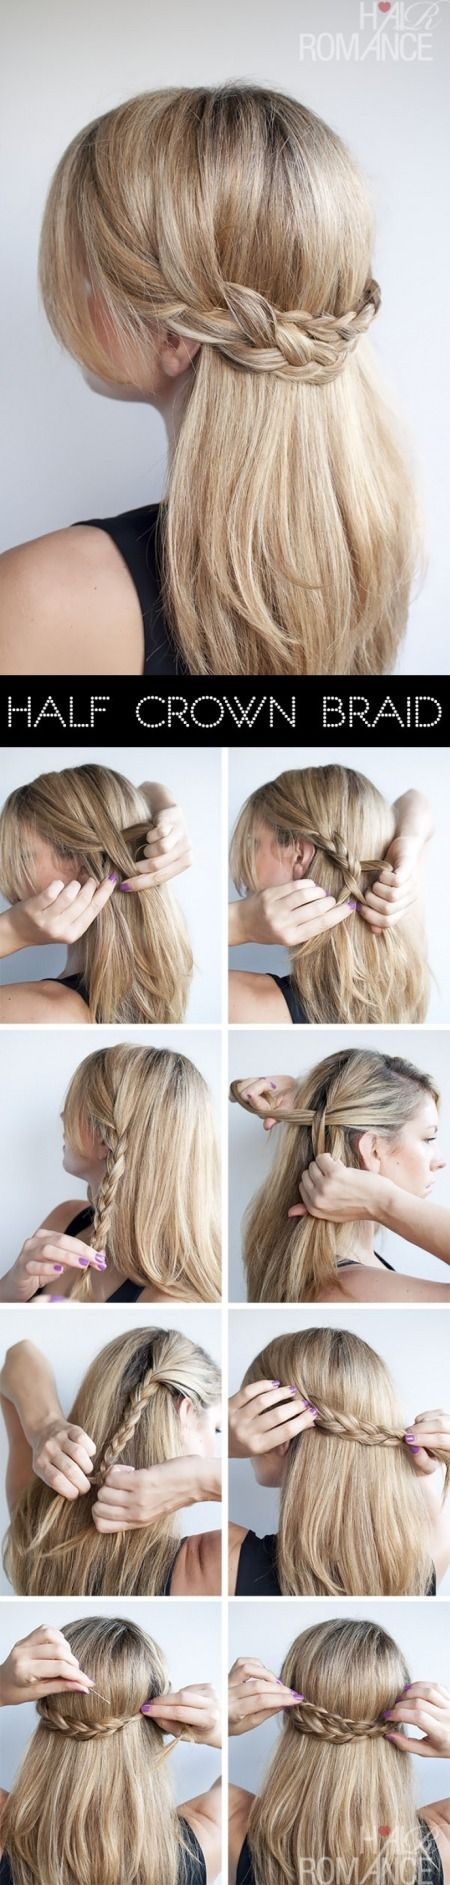 Cute and easy hairstyle tutorials peinados pinterest easy